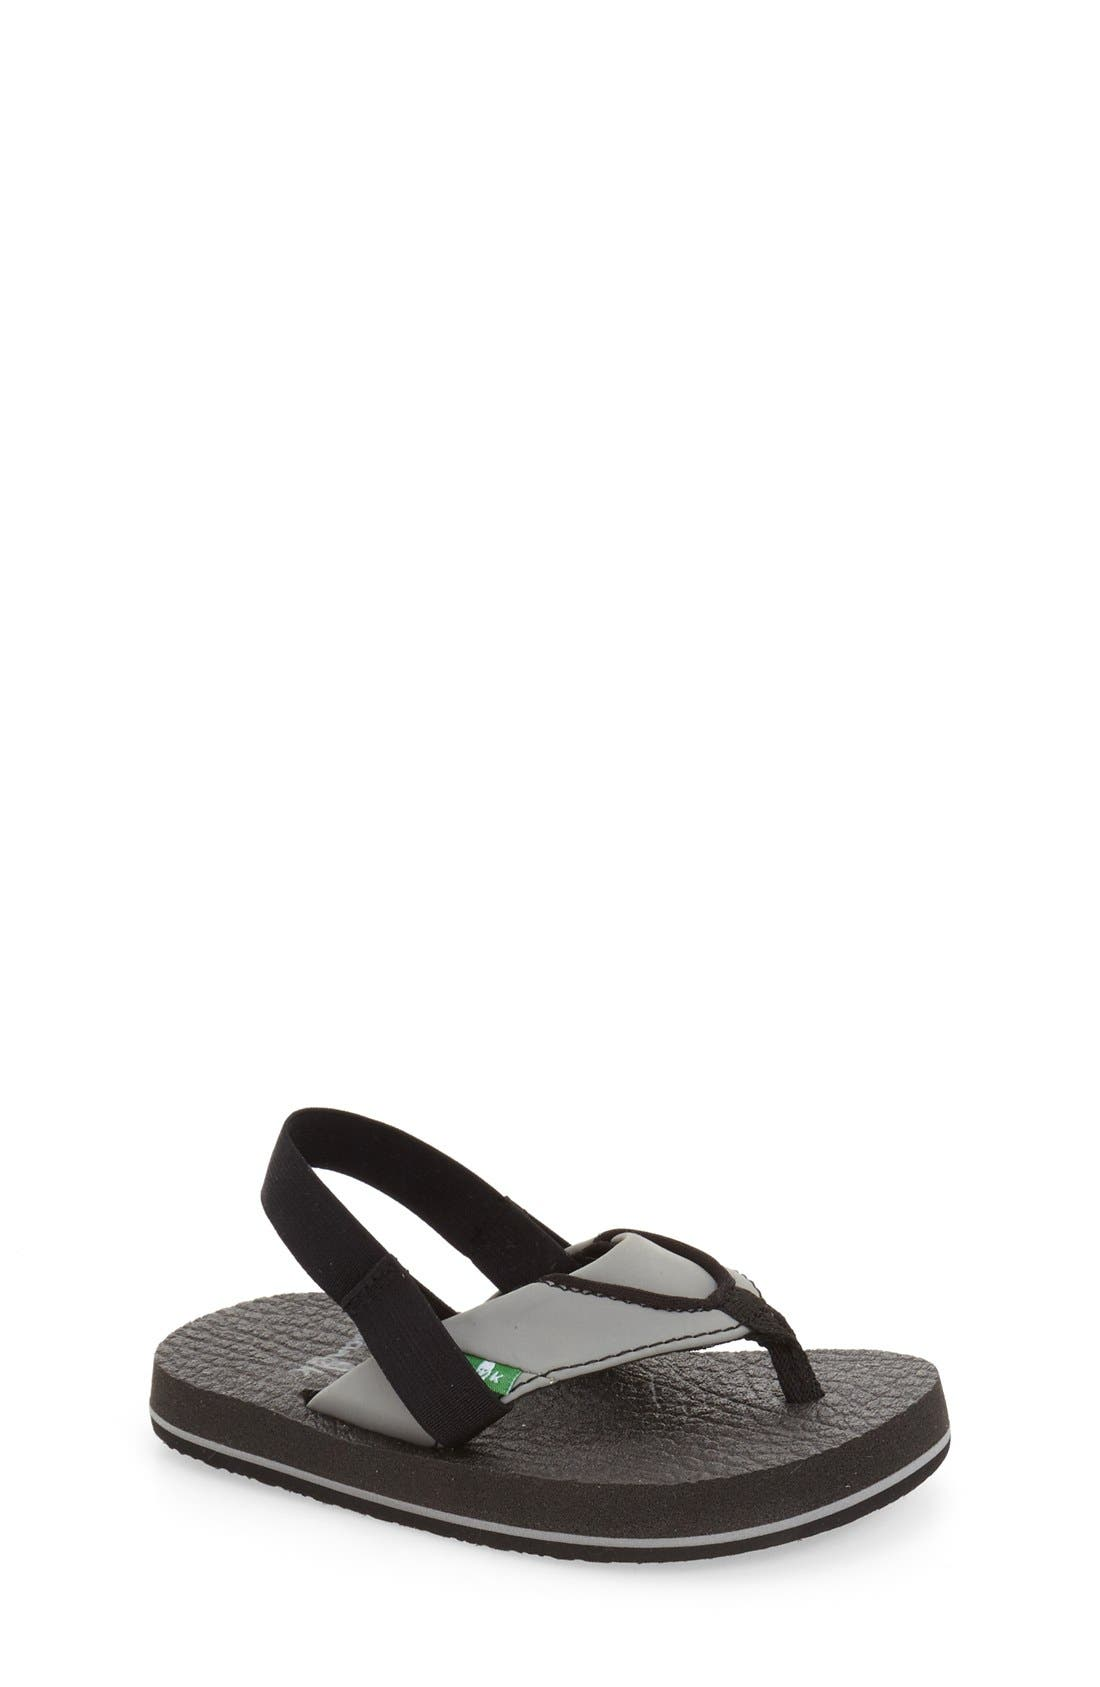 Sanuk 'Root Beer' Sandal (Toddler, Little Kid & Big Kid)